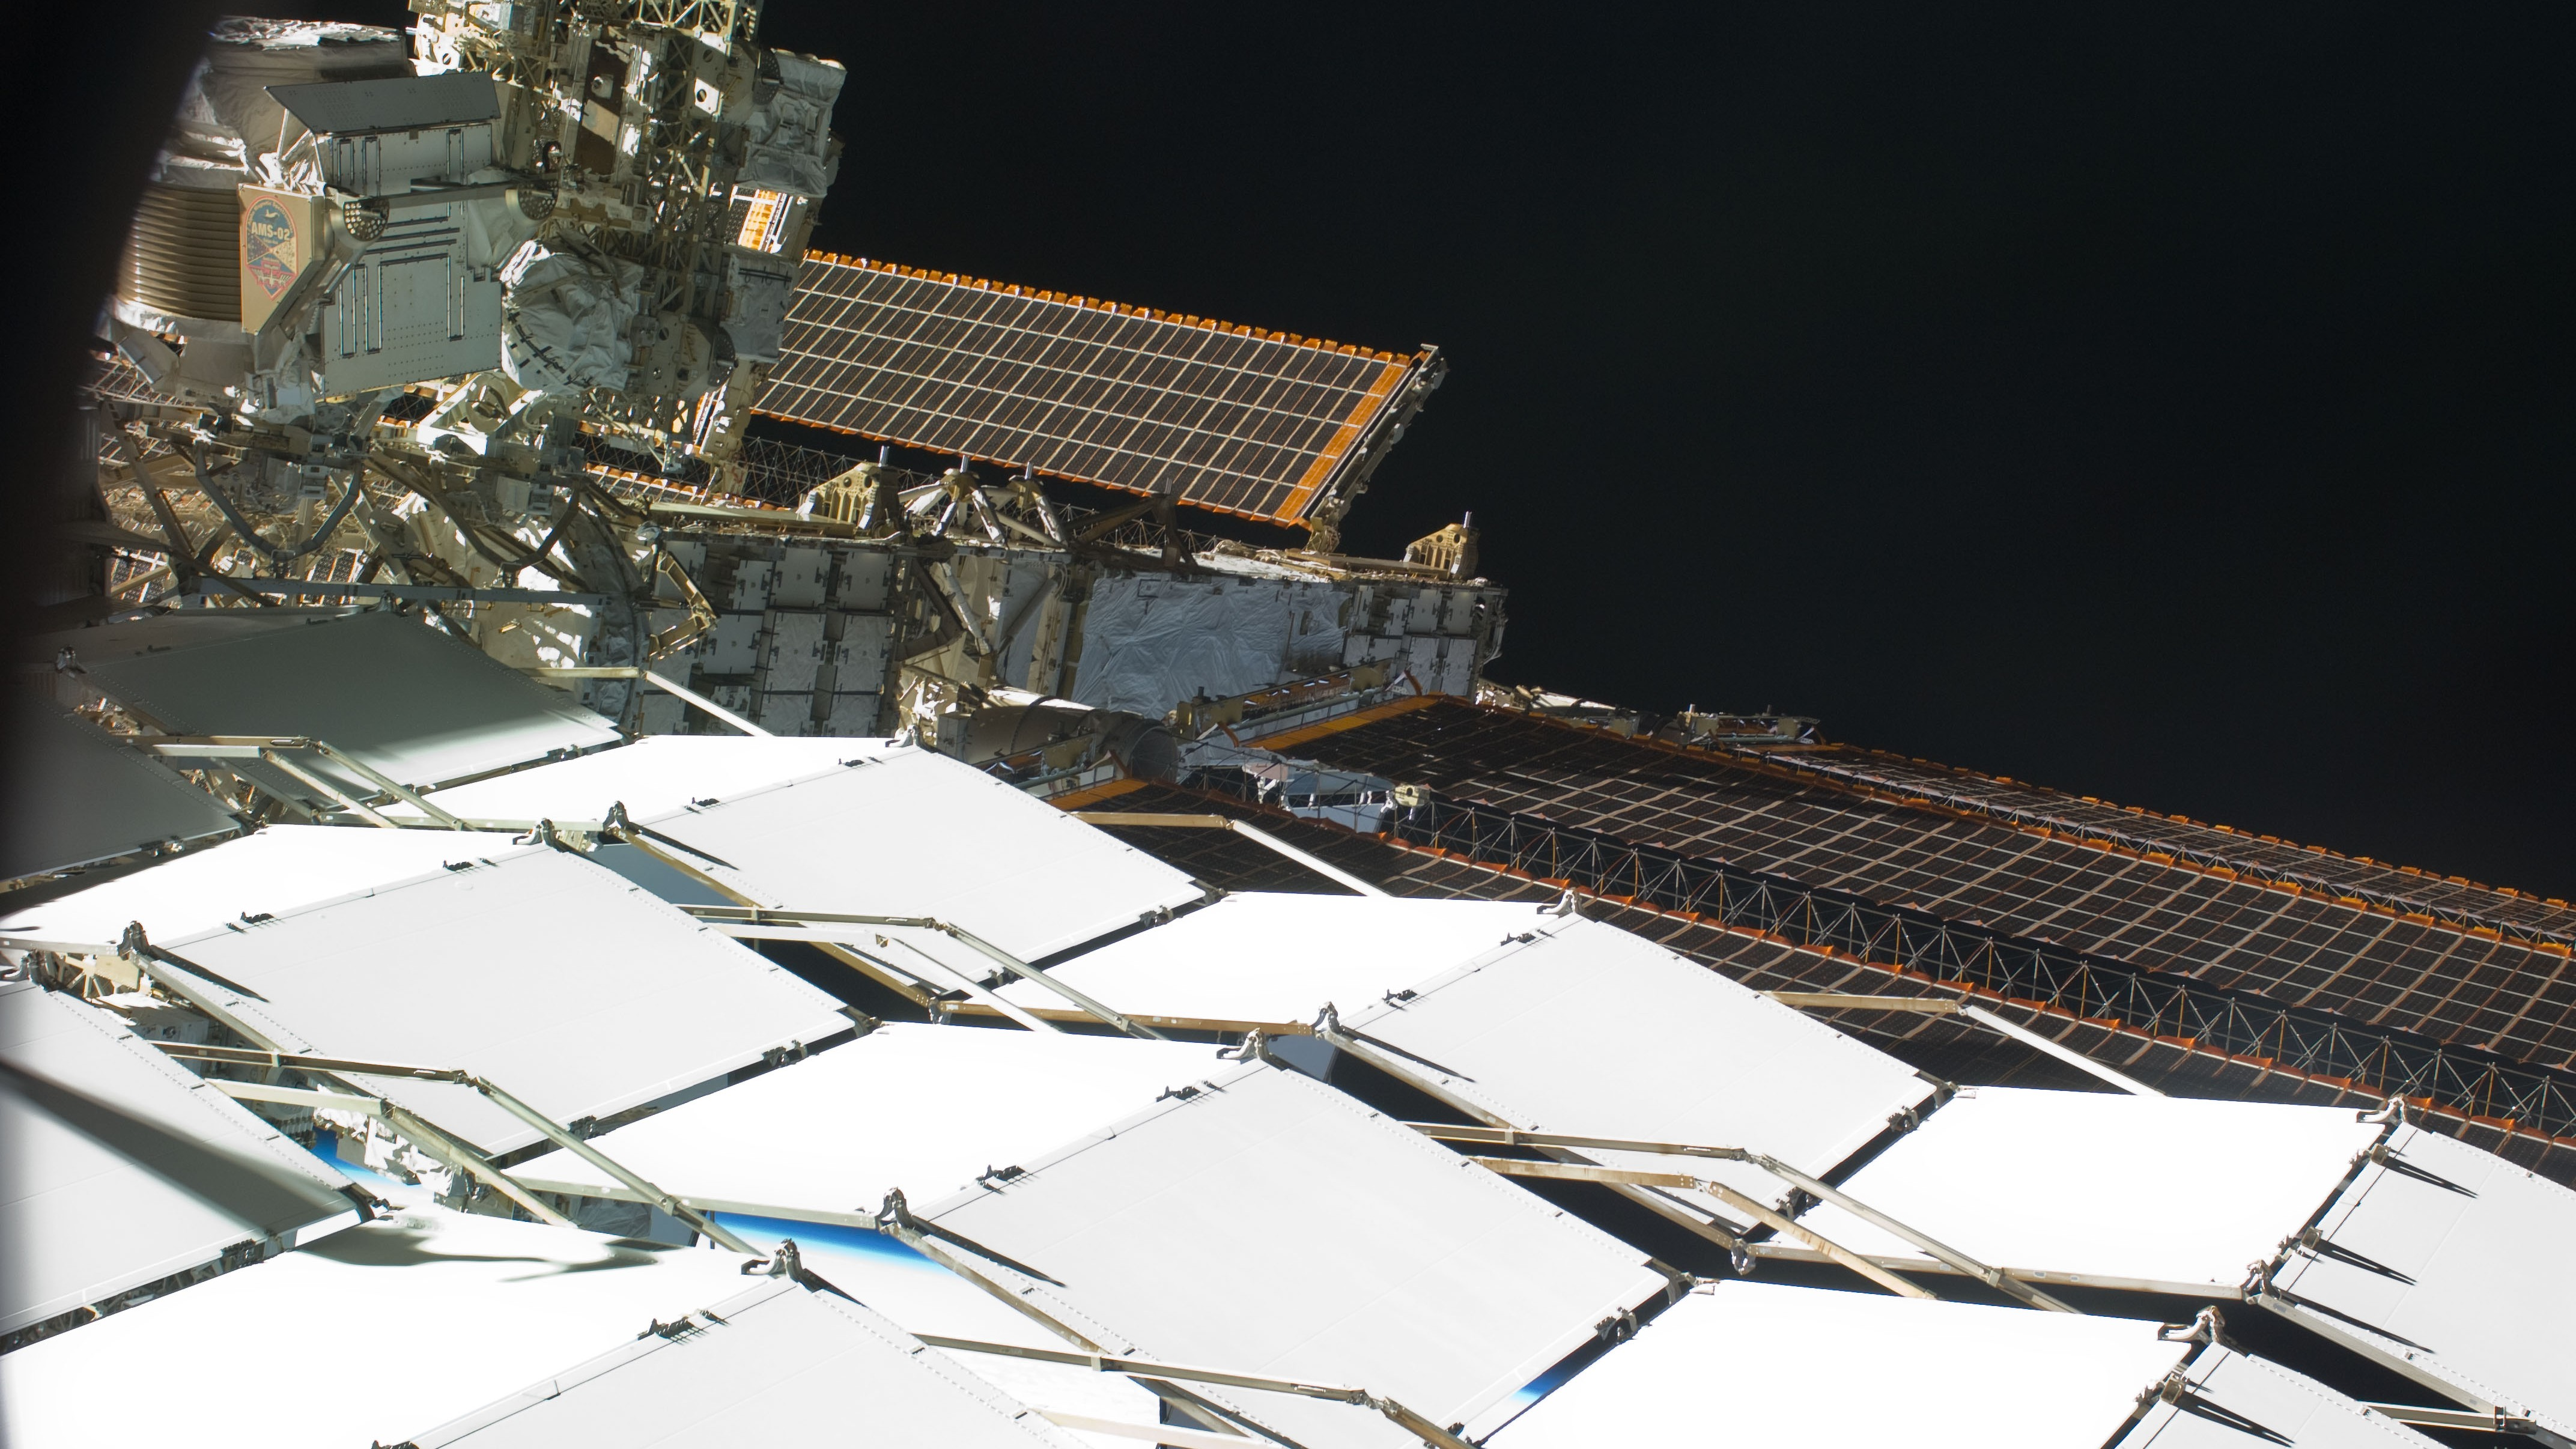 New Hints of Dark Matter from the International Space Station